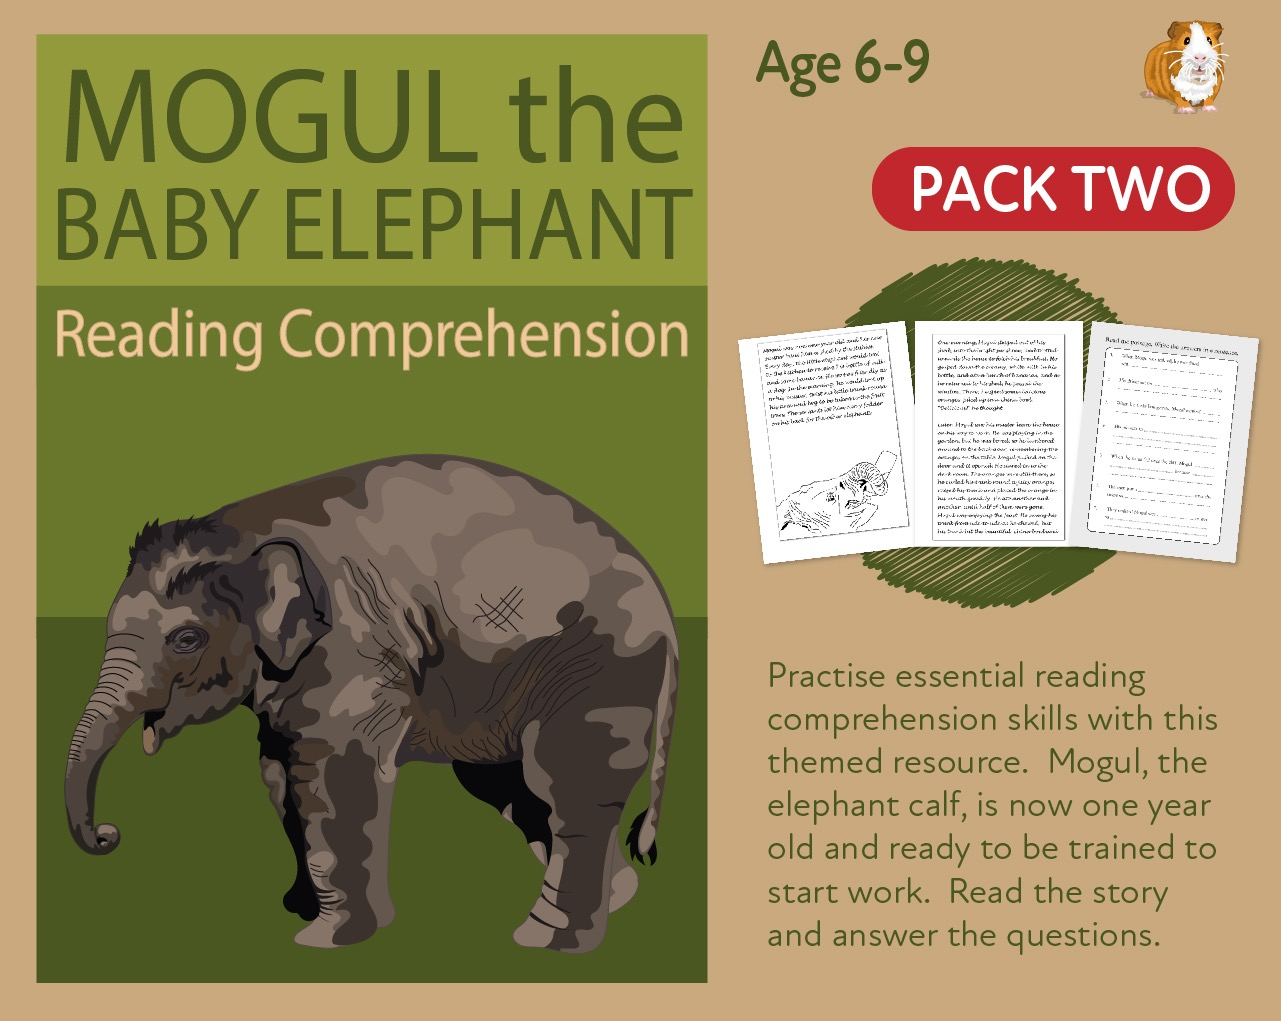 Let's Practise Our Reading Comprehension: Mogul The Baby Elephant: Part 2 (6-9 years)